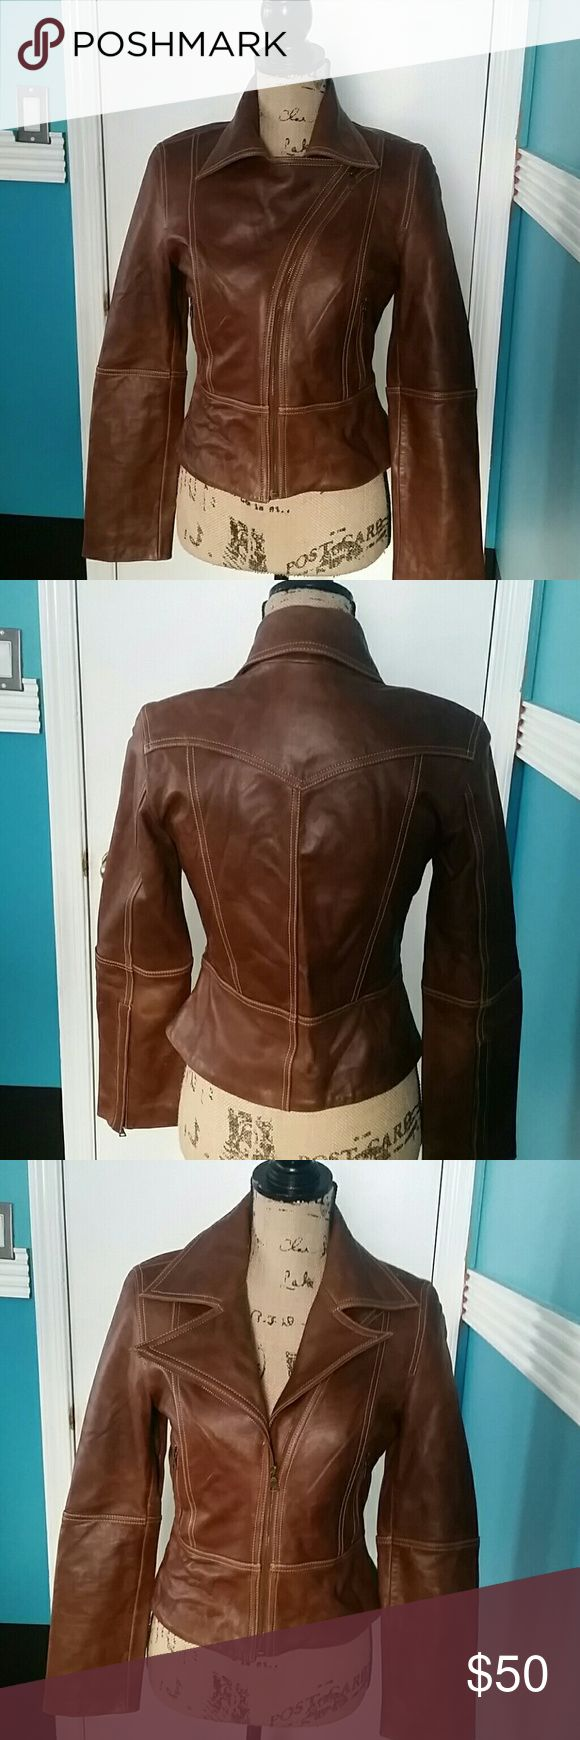 Ladies Brown Leather Jacket Size Small Brown Leather Jacket Guess Jackets & Coats